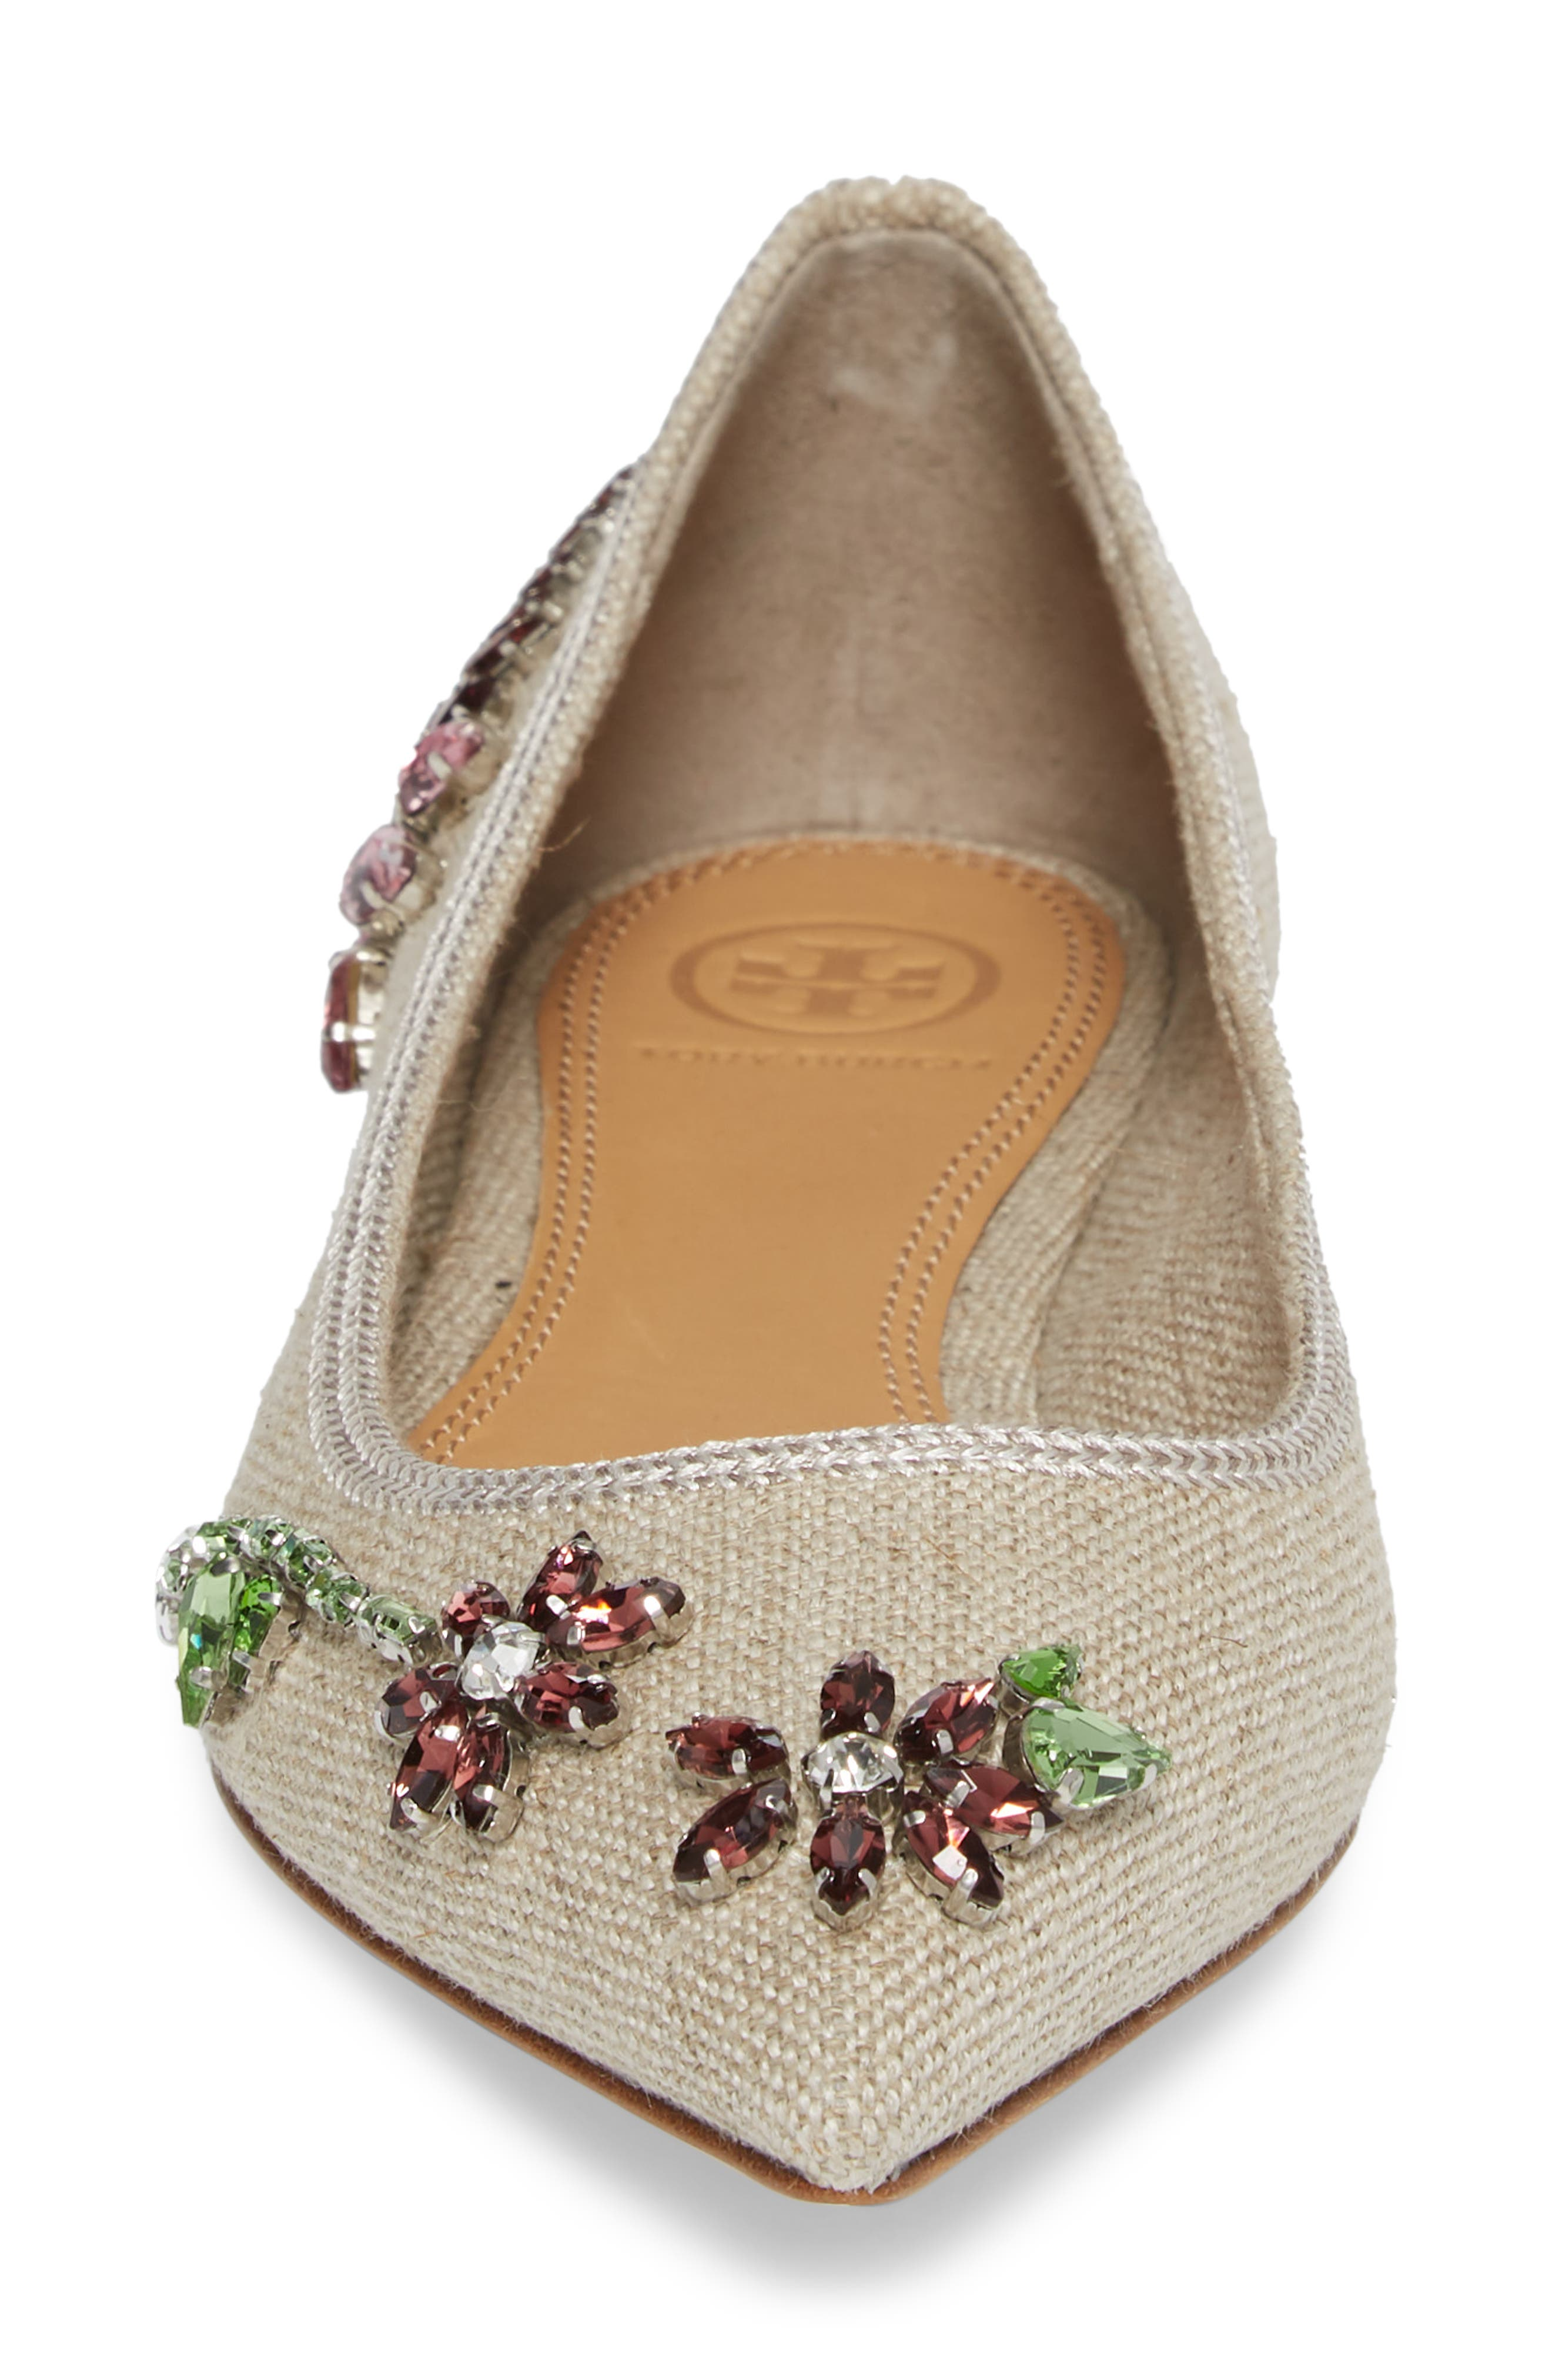 Meadow Embellished Pointy Toe Flat,                             Alternate thumbnail 4, color,                             Natural/ Multi Color